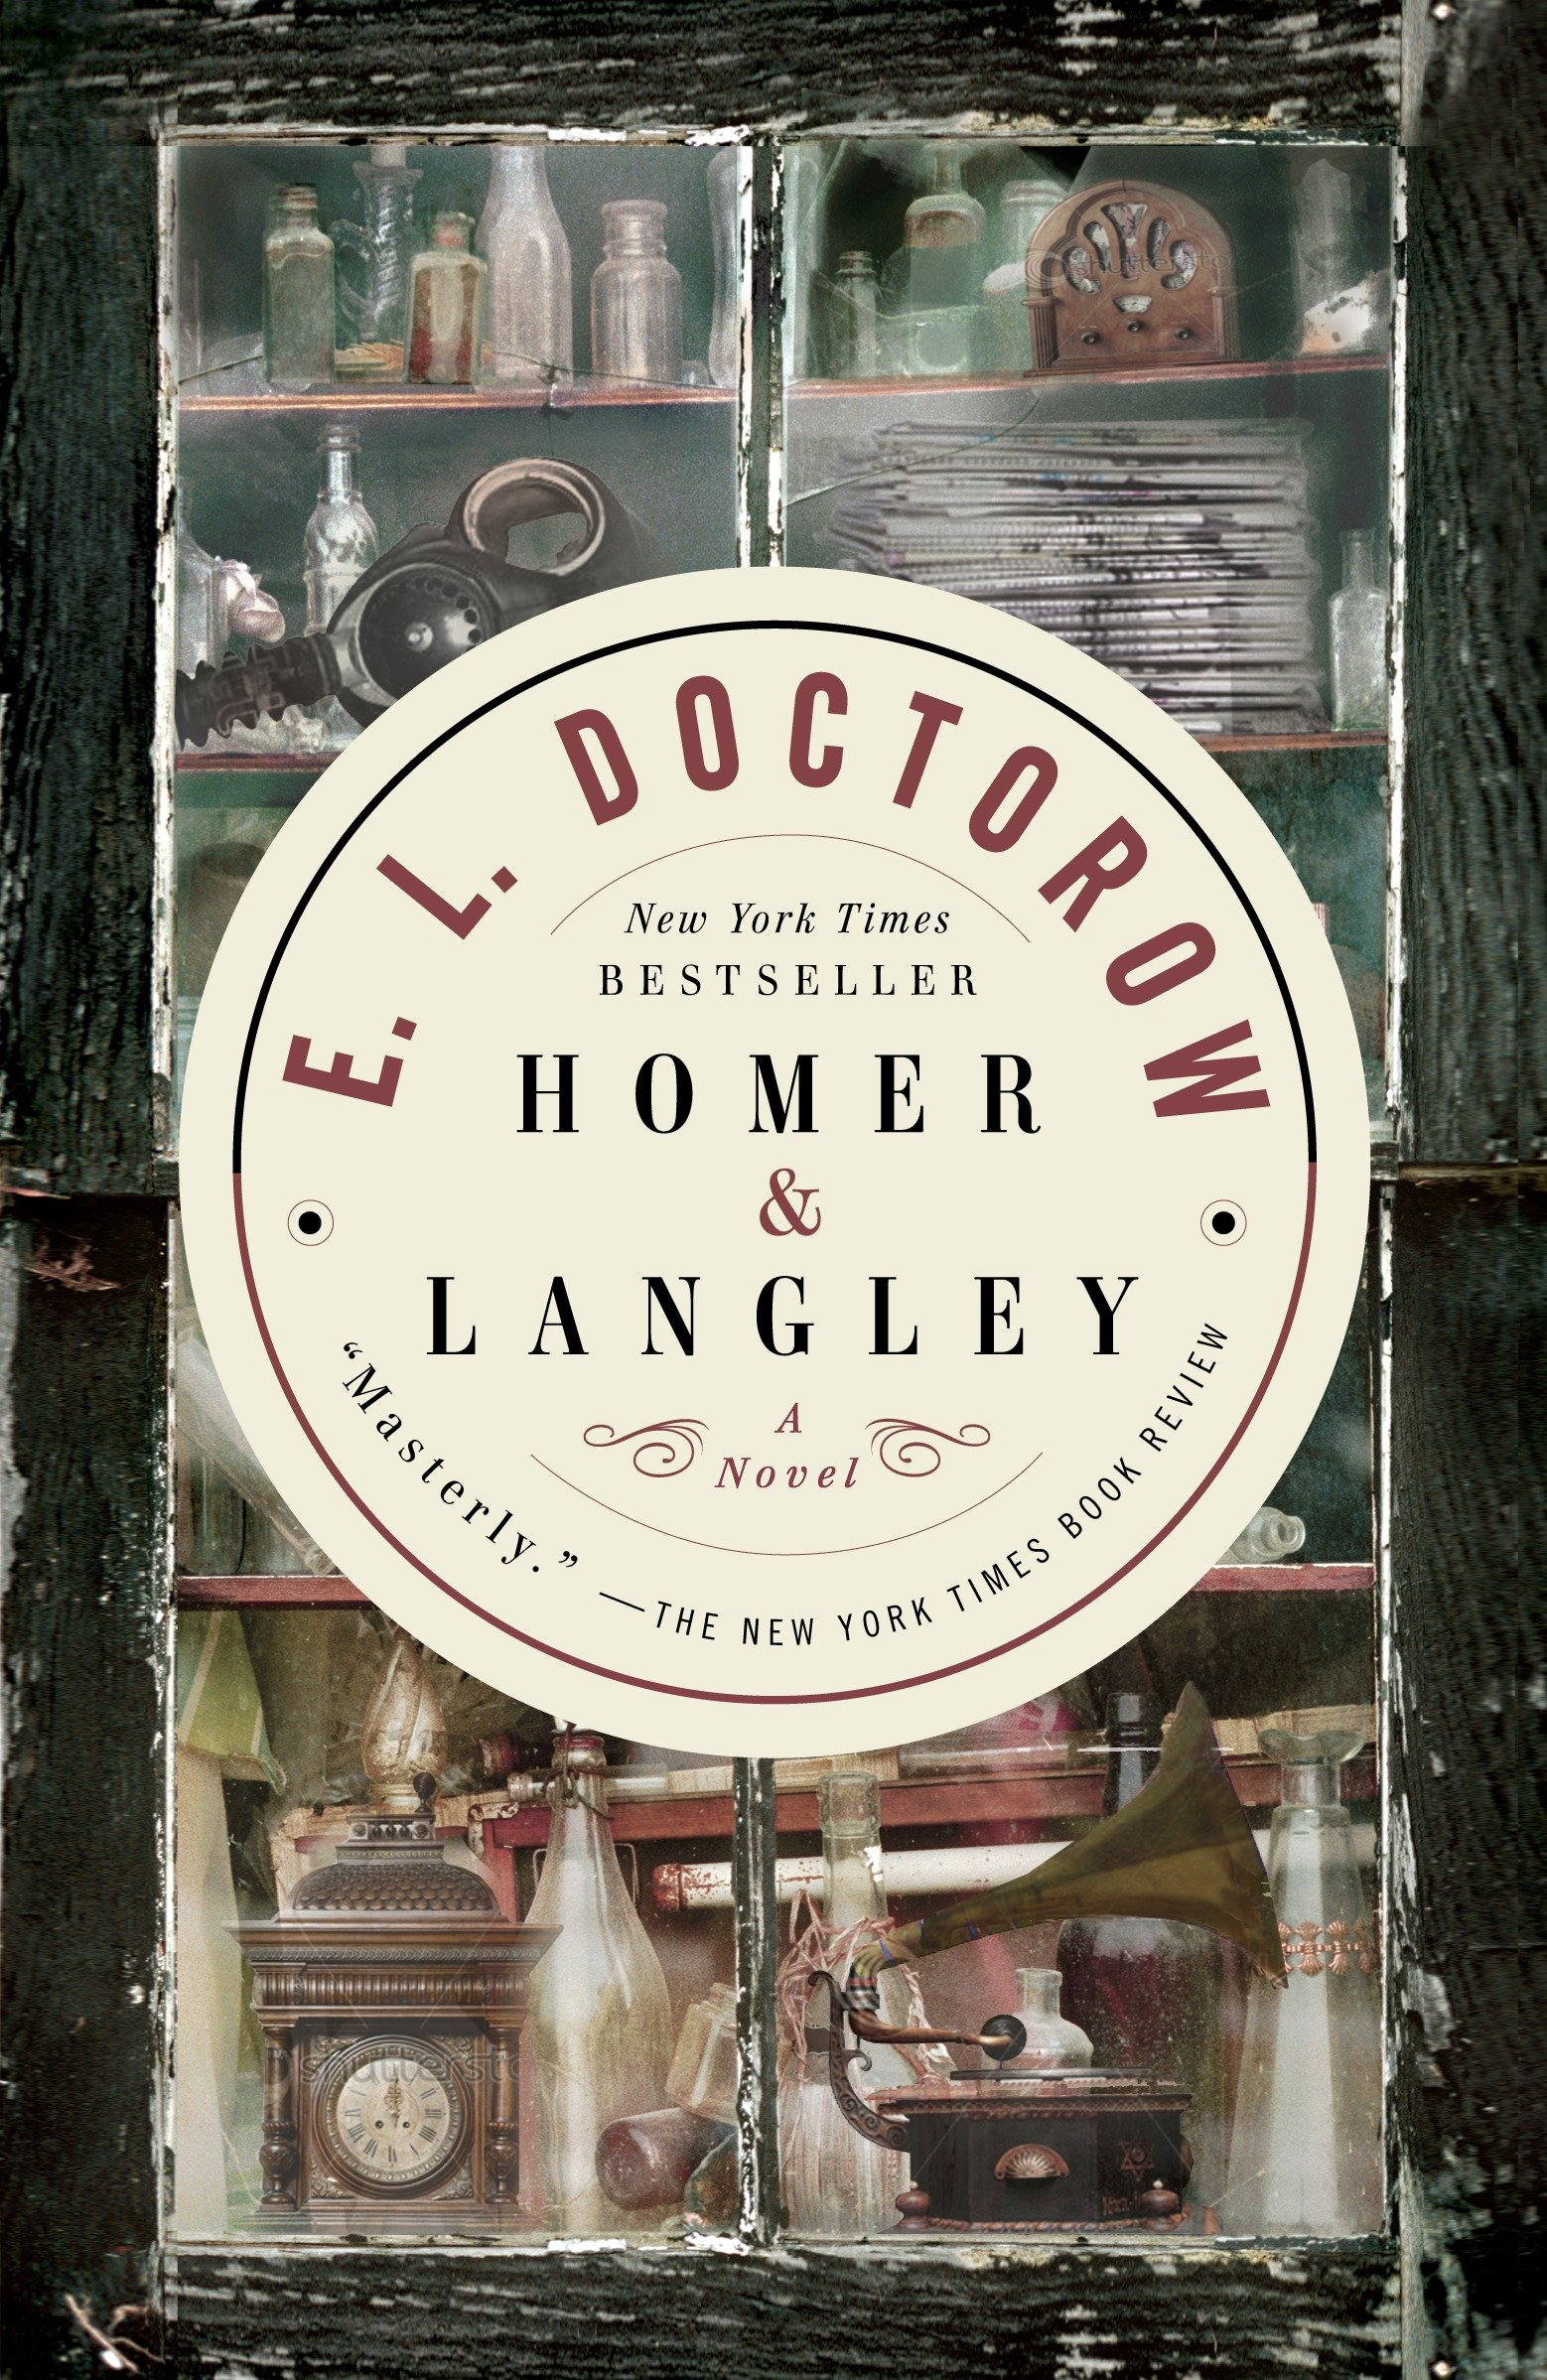 Homer & Langley cover image